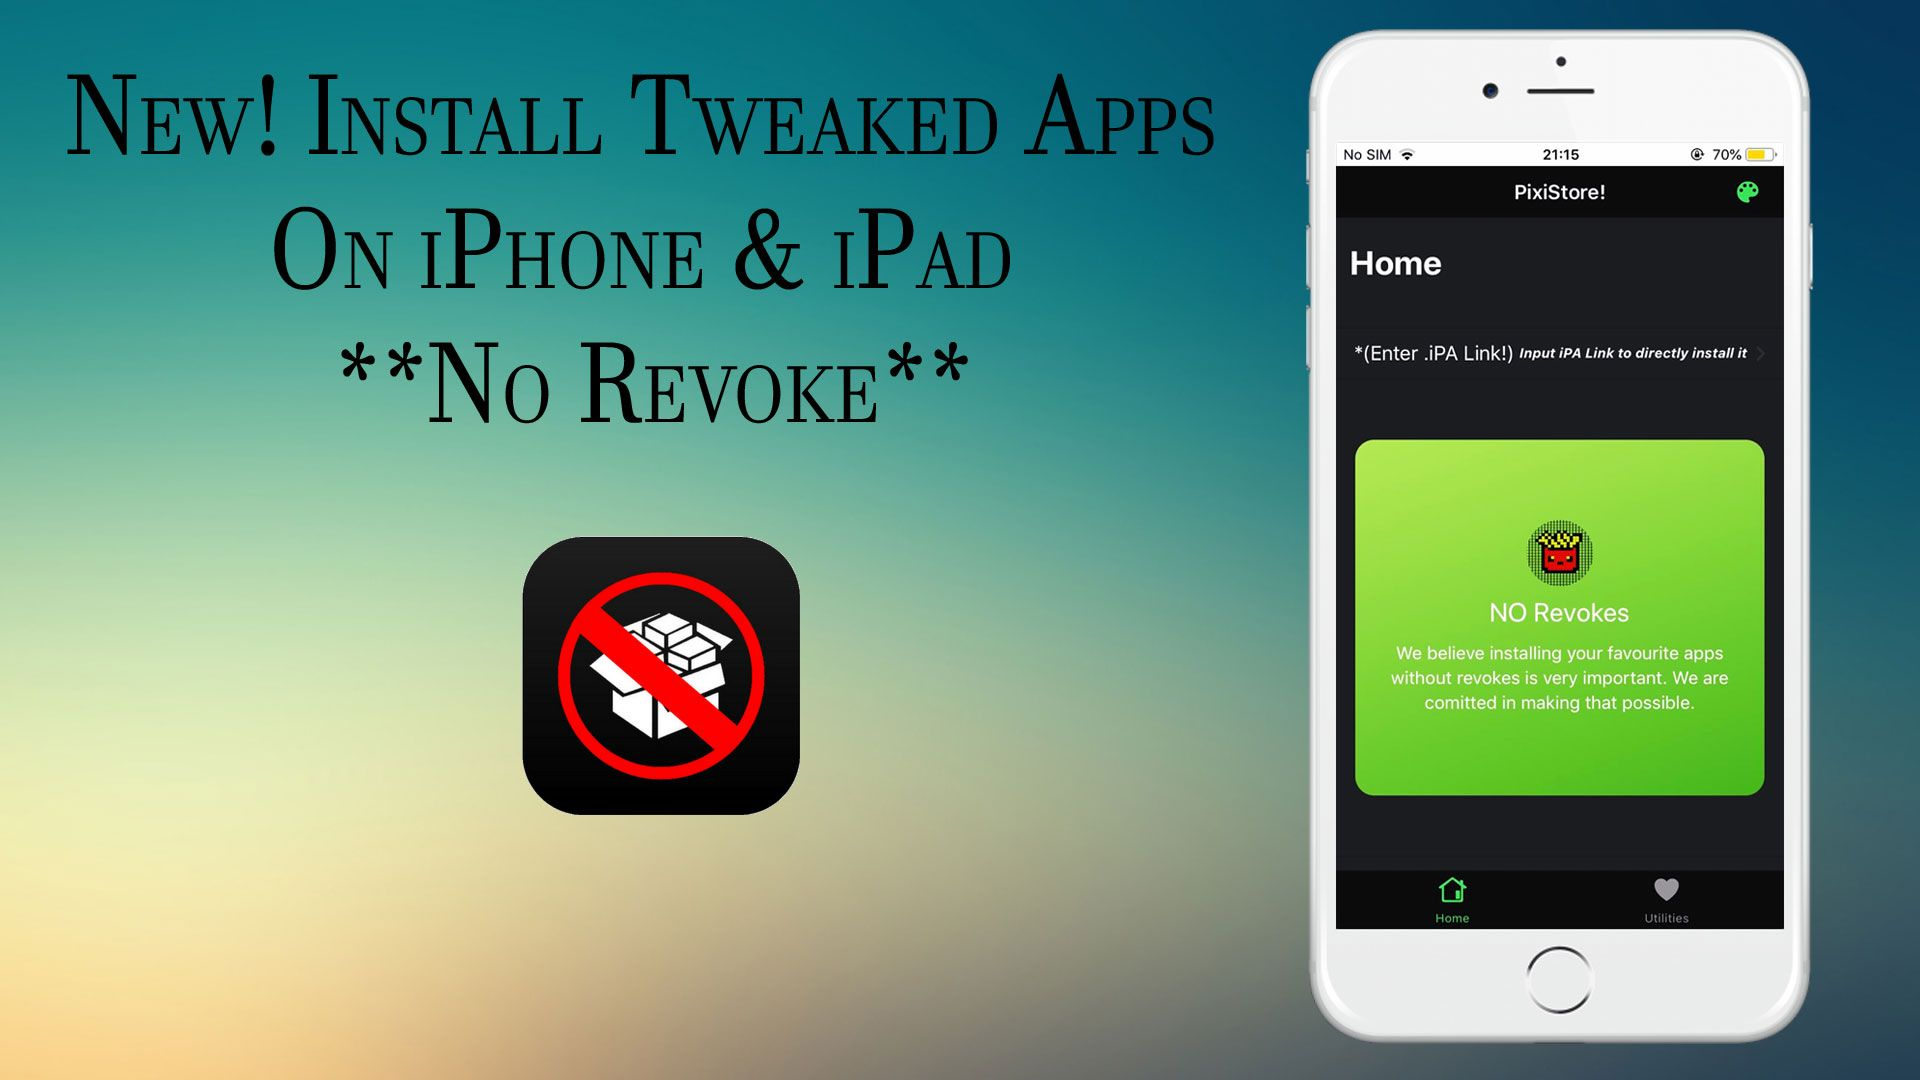 New! How to install tweaked apps on iPhone without